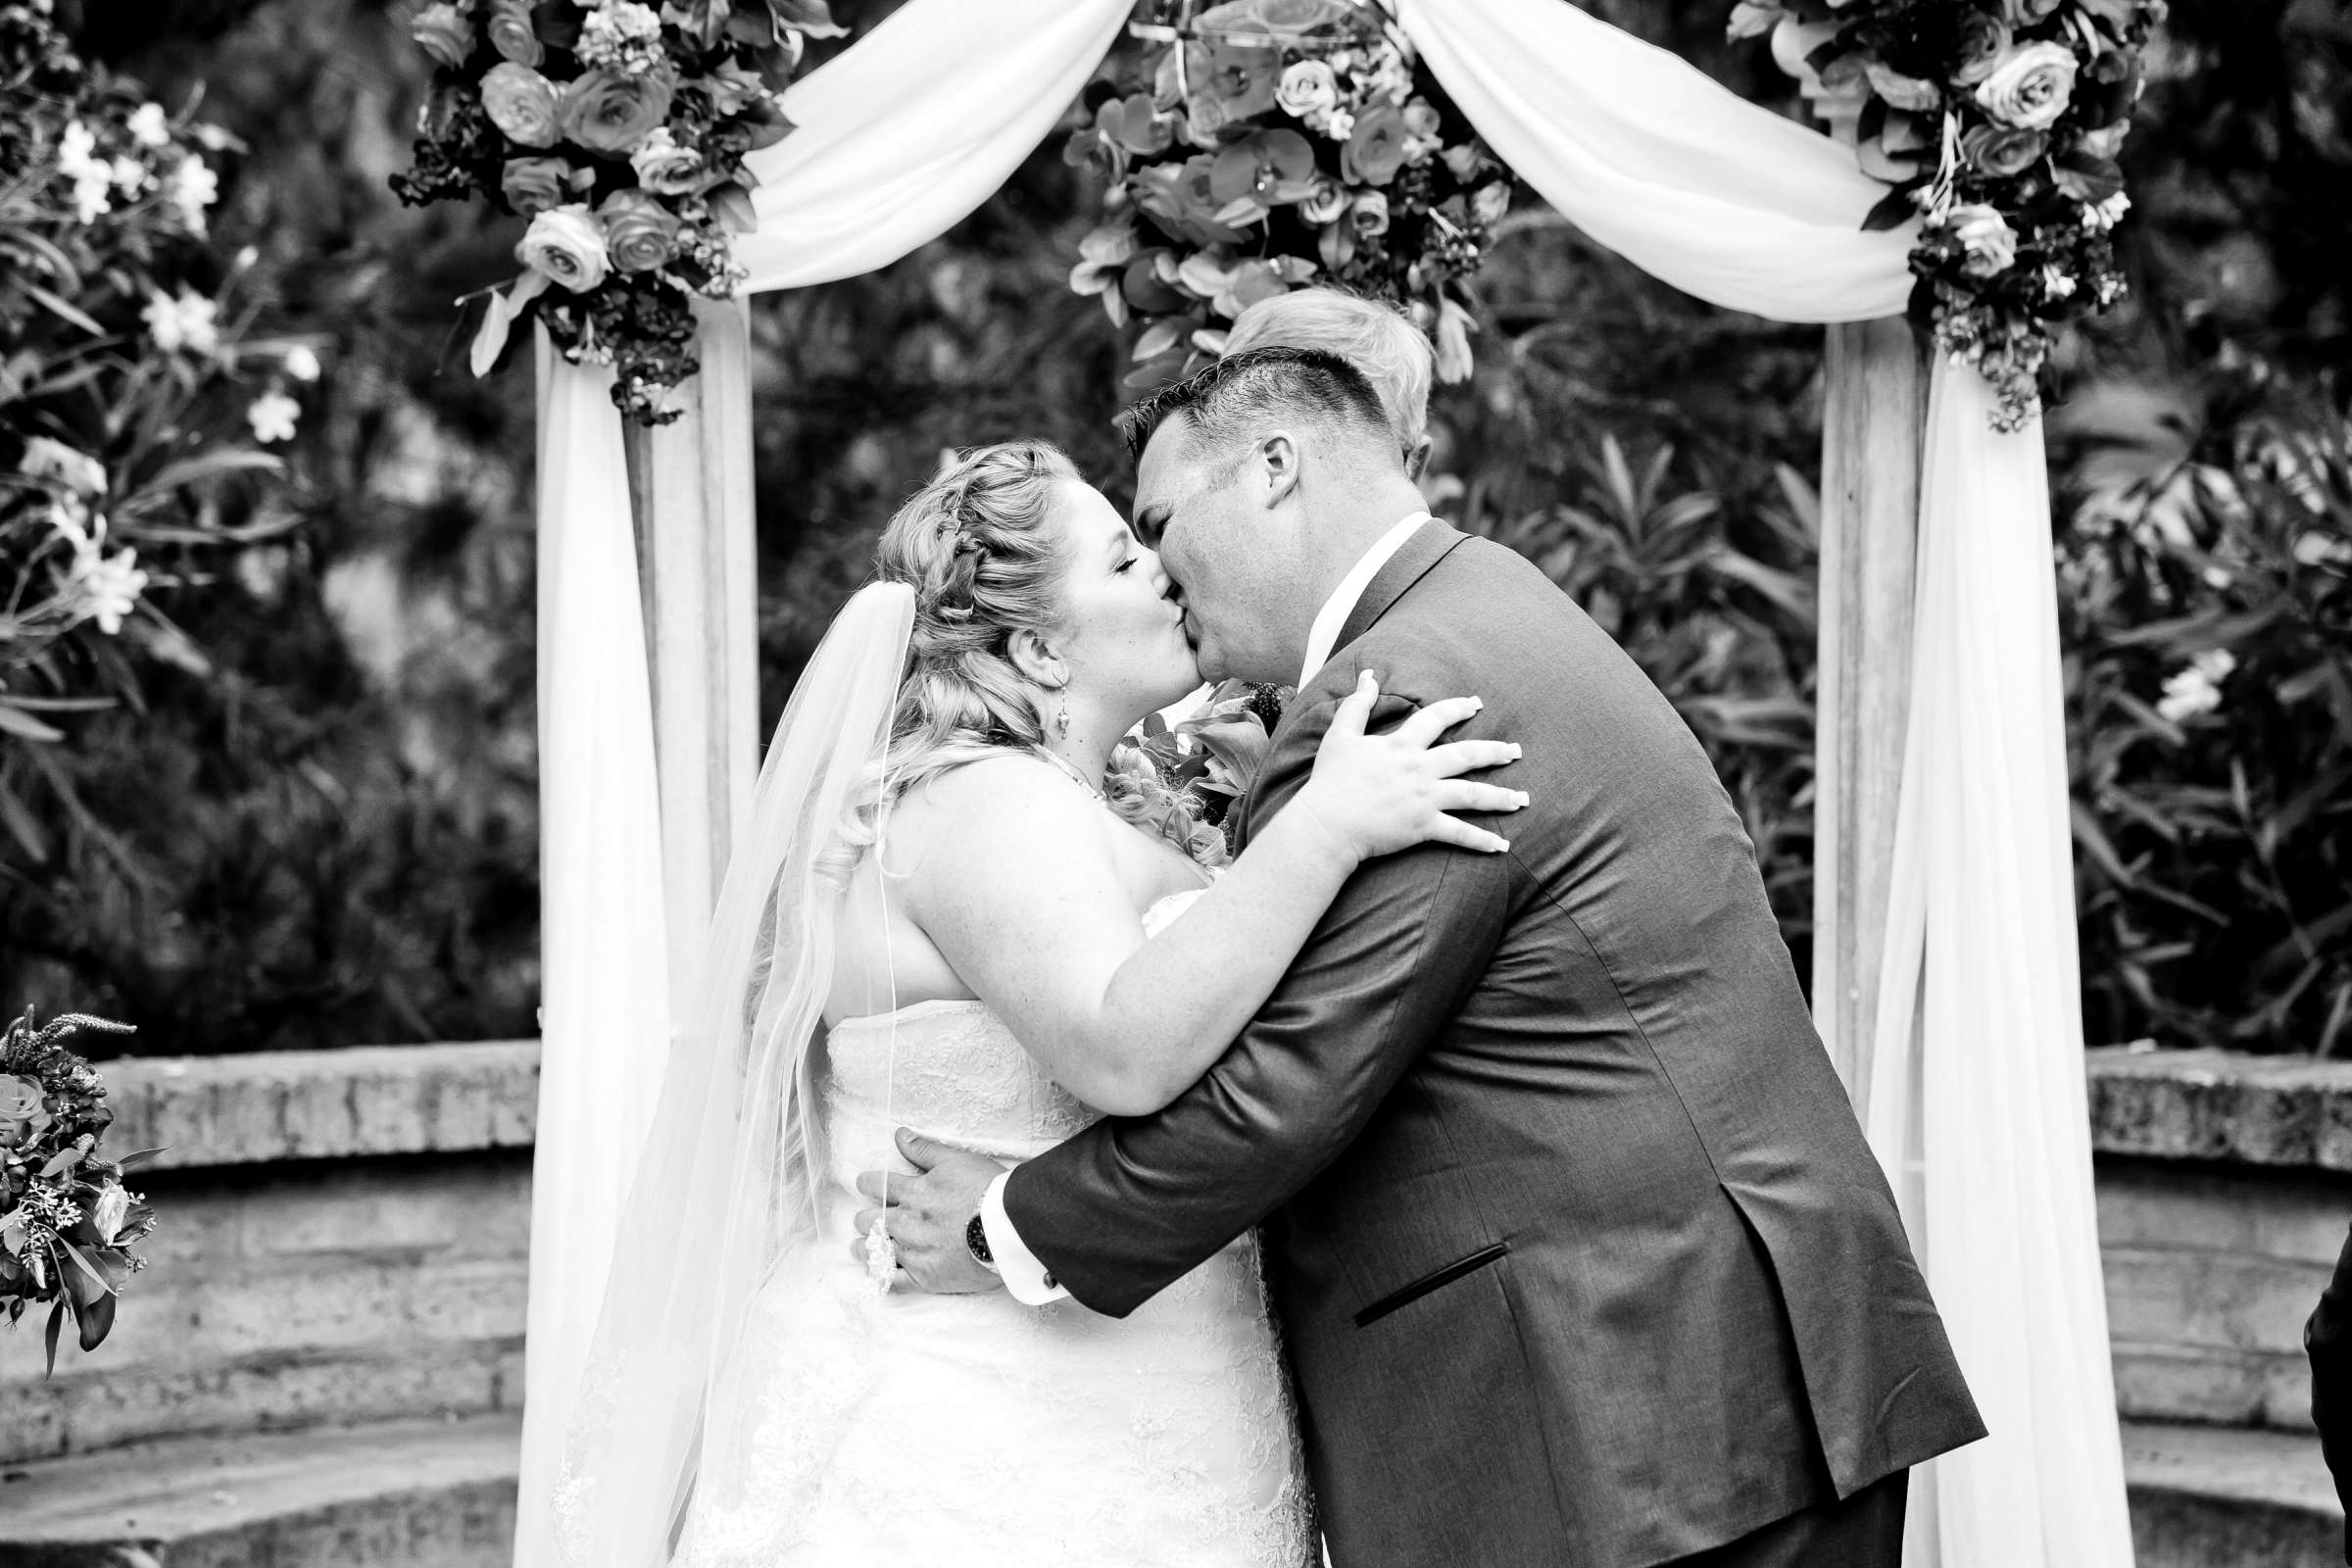 The Prado Wedding coordinated by Monarch Weddings, Eileen and Robbie Wedding Photo #14 by True Photography